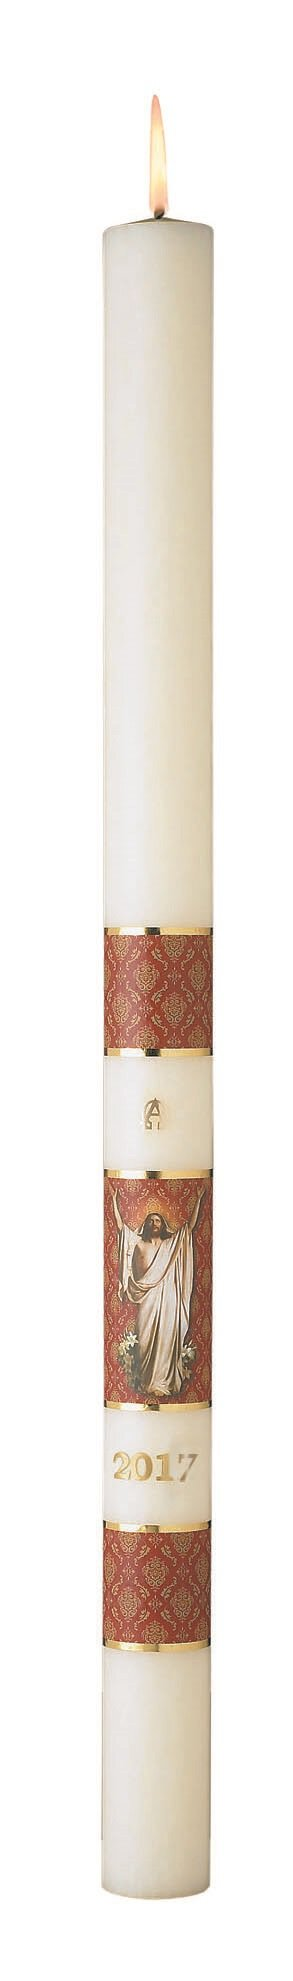 No 5 Risen Christ Paschal Candle